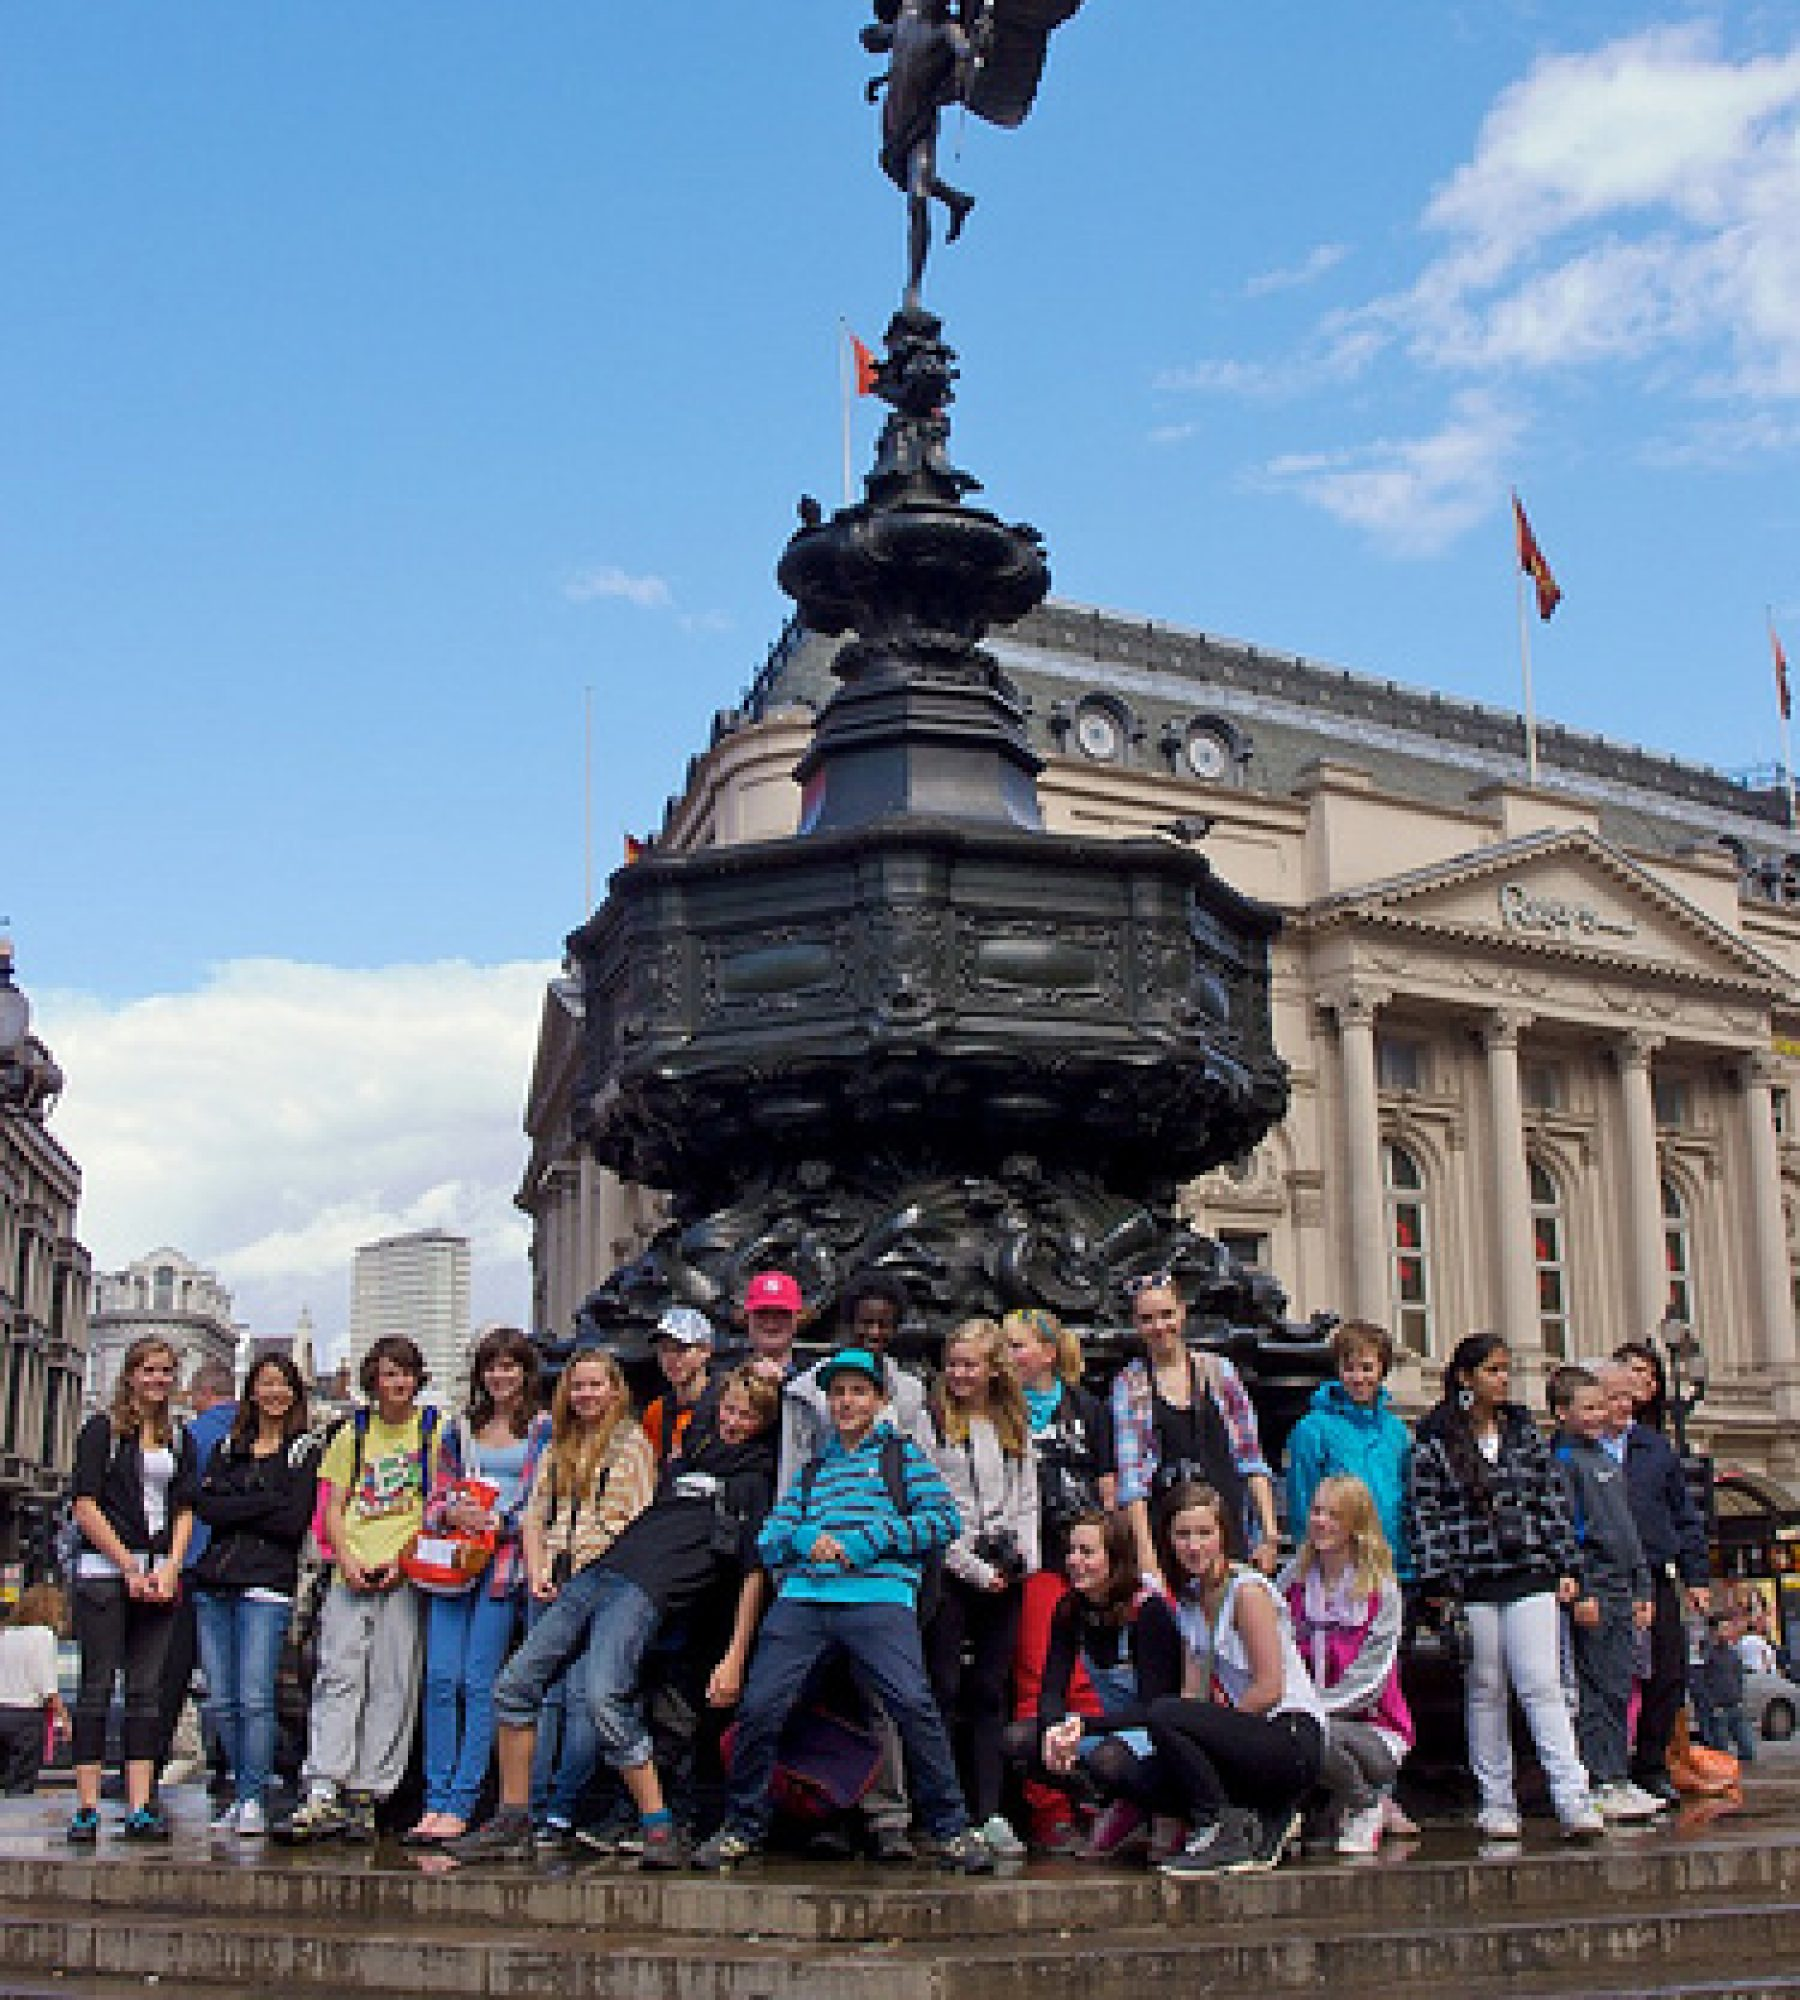 Excursion students